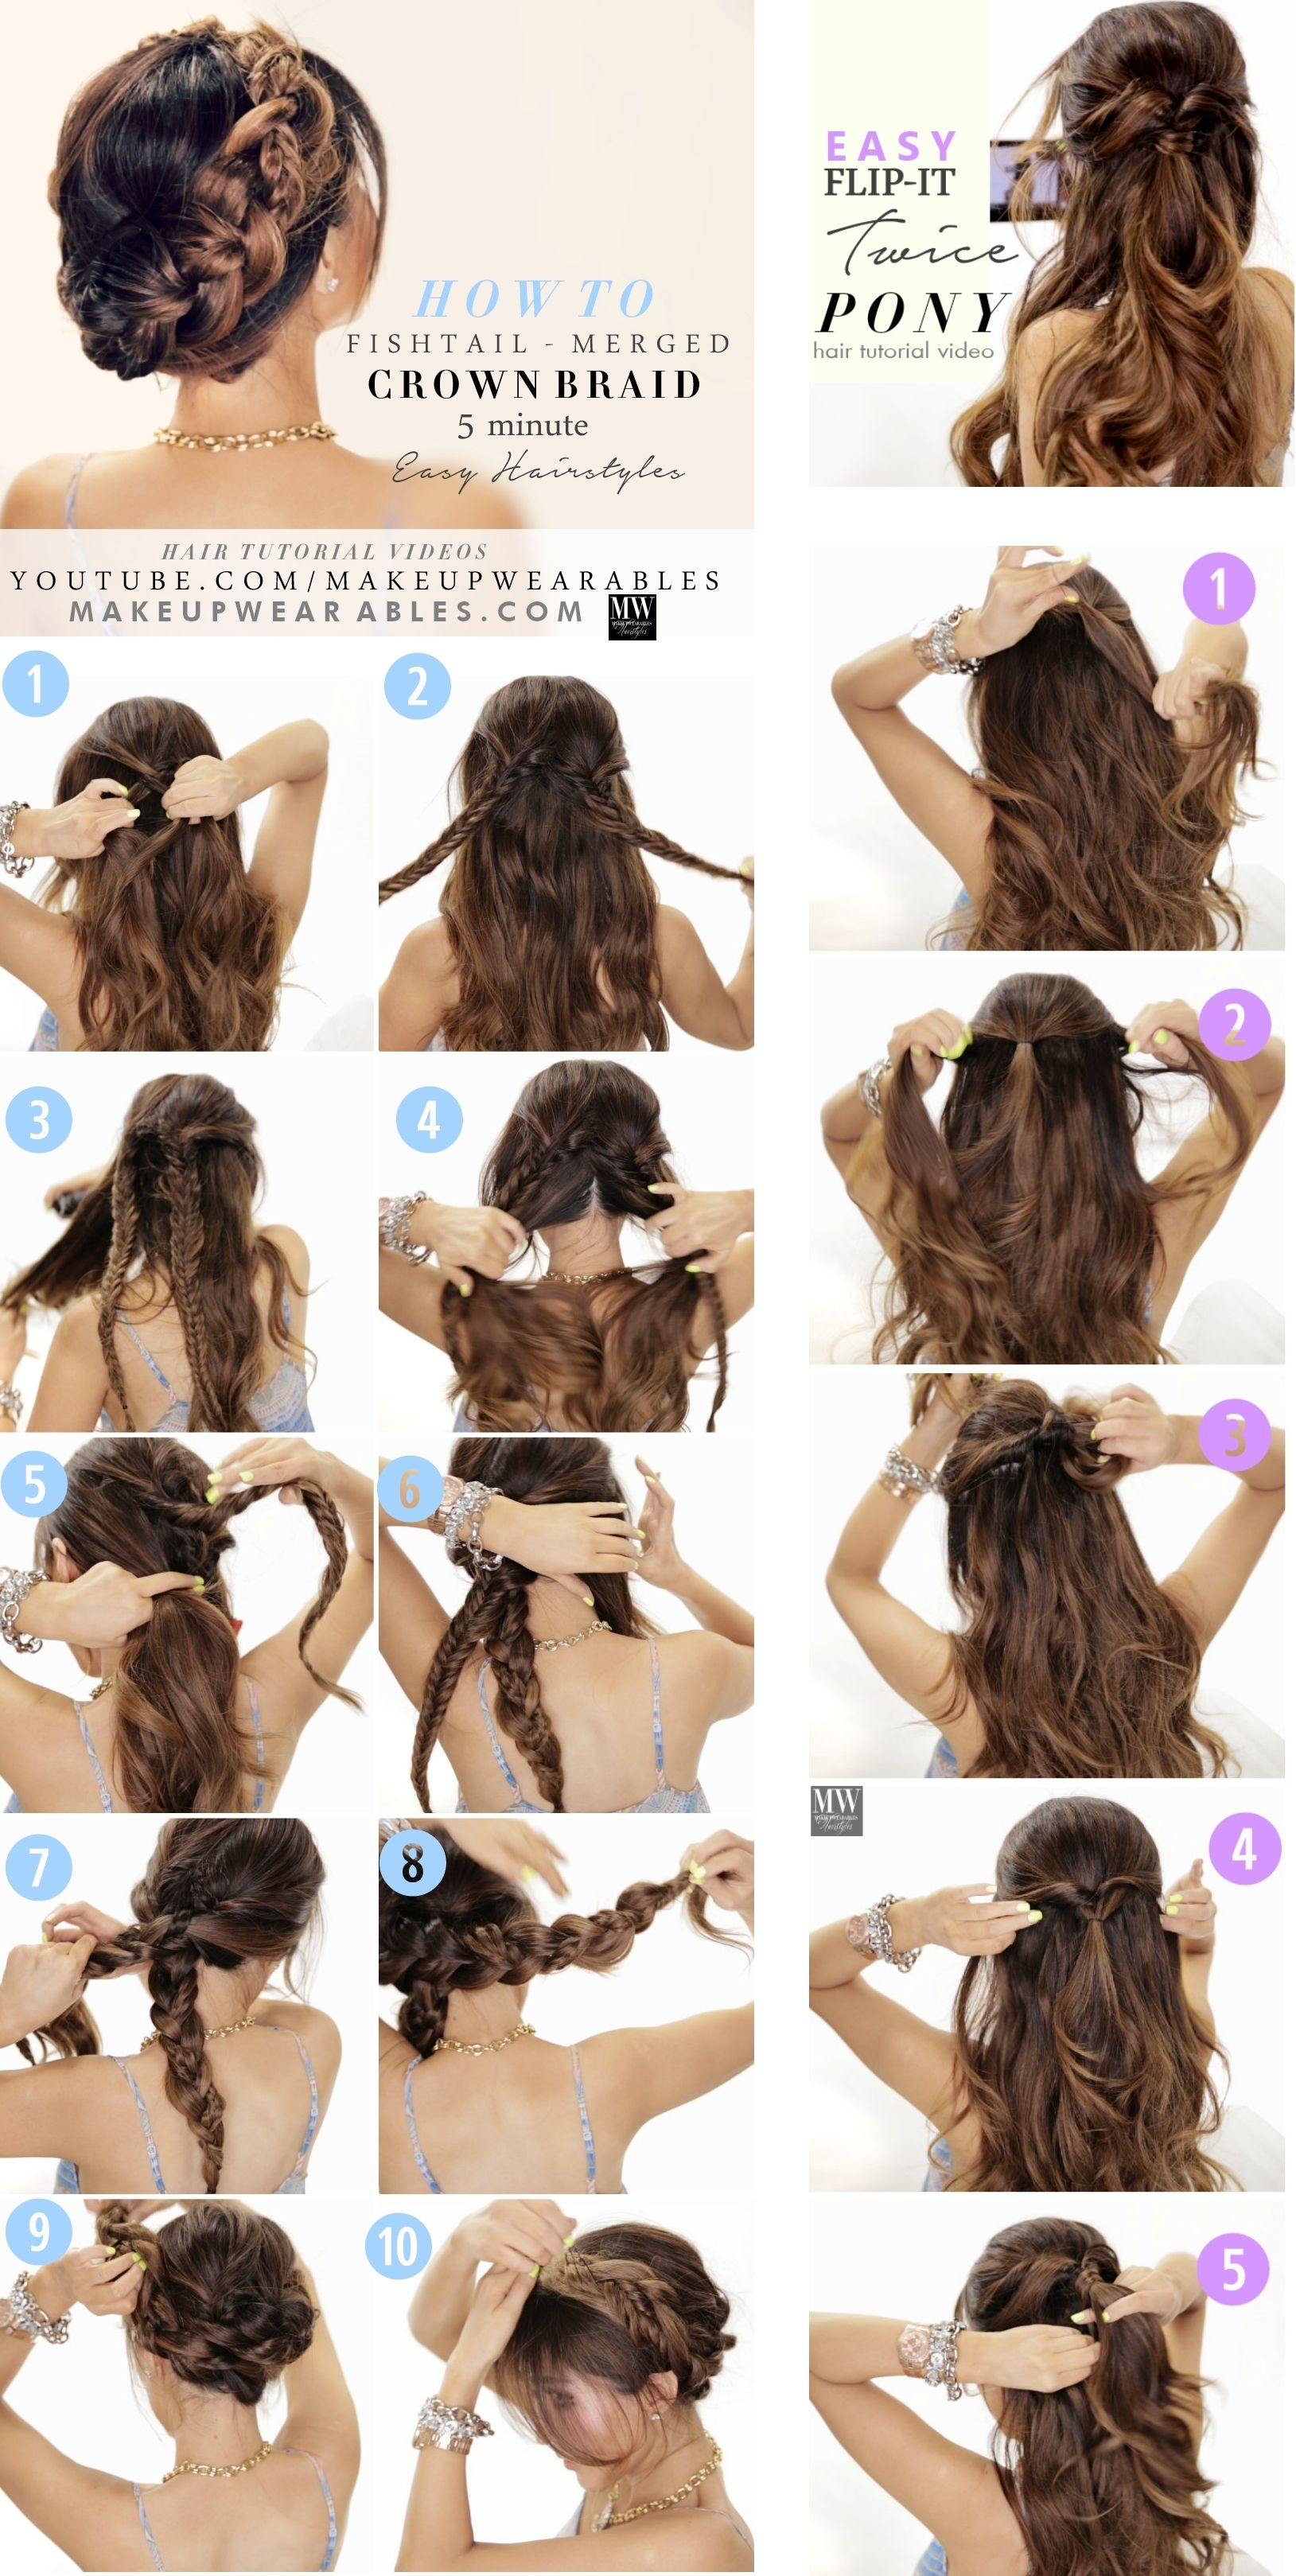 12 Amazingly Easy Back to School Hairstyles with Merged Braids